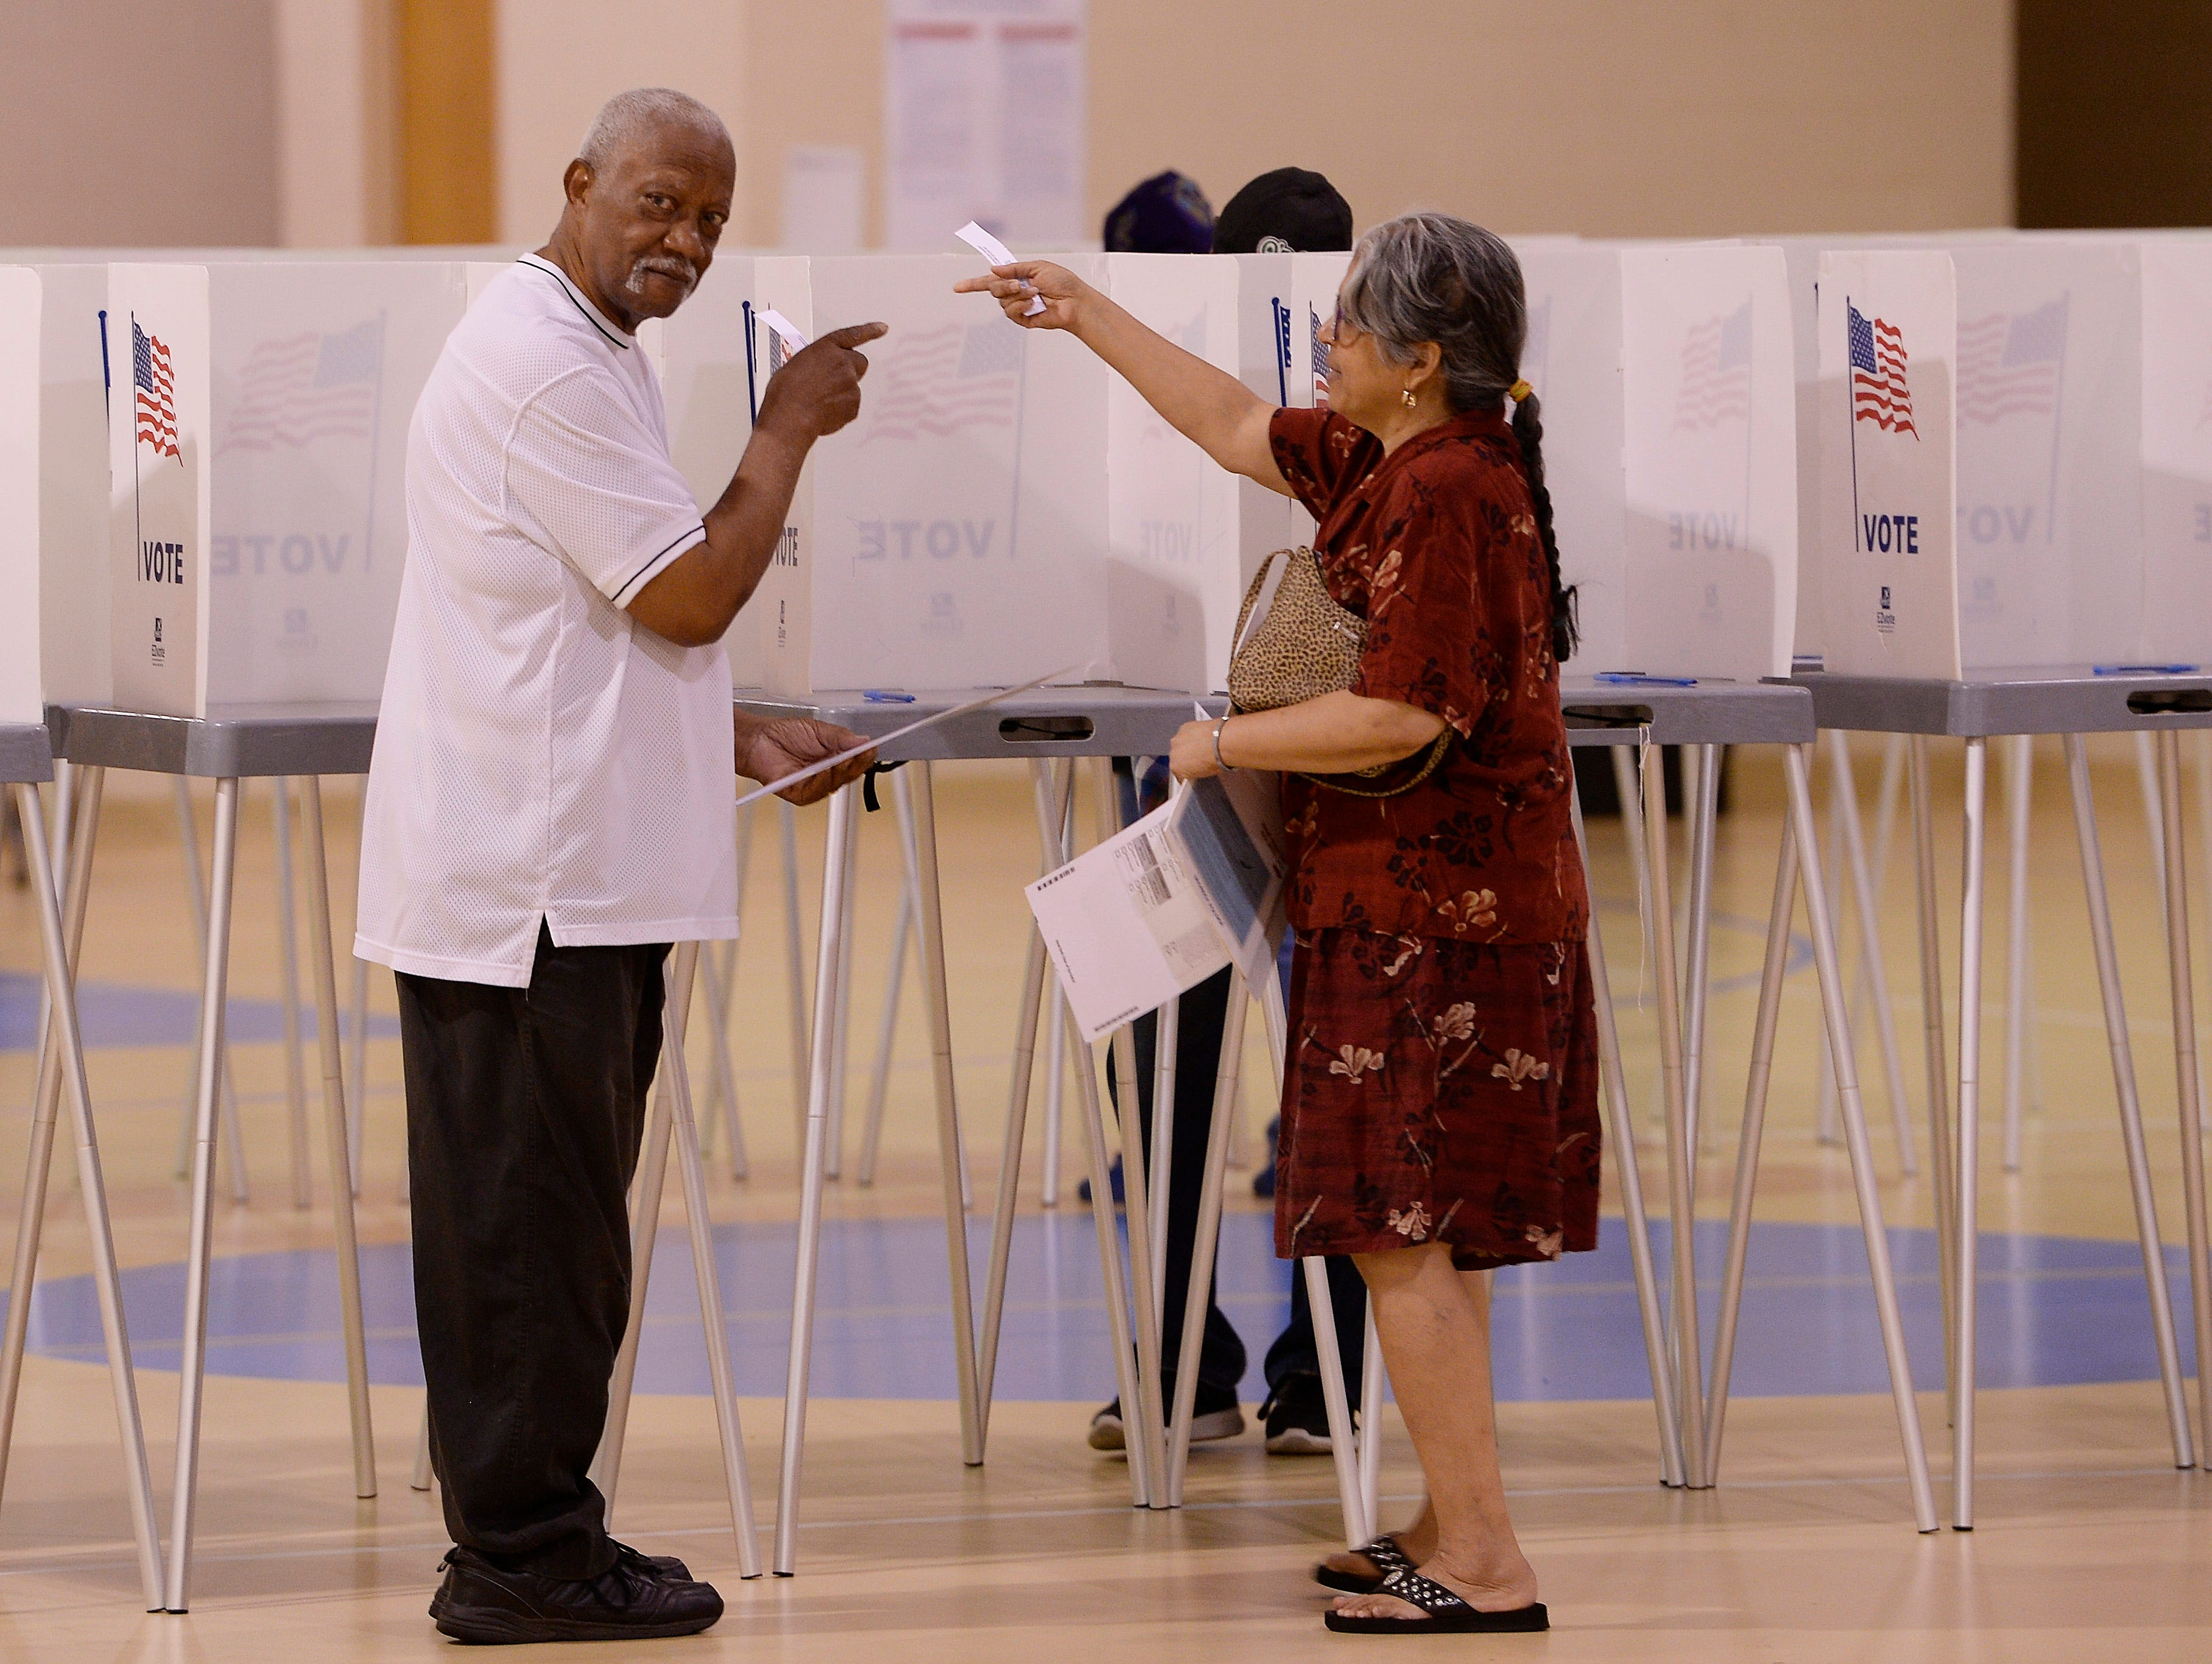 Melvin Taylor, 83, and his wife Marcia Taylor of Pontiac talk after casting their votes this morning at New Bethel Missionary church.***Voters and campaign workers at New Bethel Missionary Baptist church. August 7, 2018, Pontiac, MI. (ClarenceTabb Jr./Detroit News)